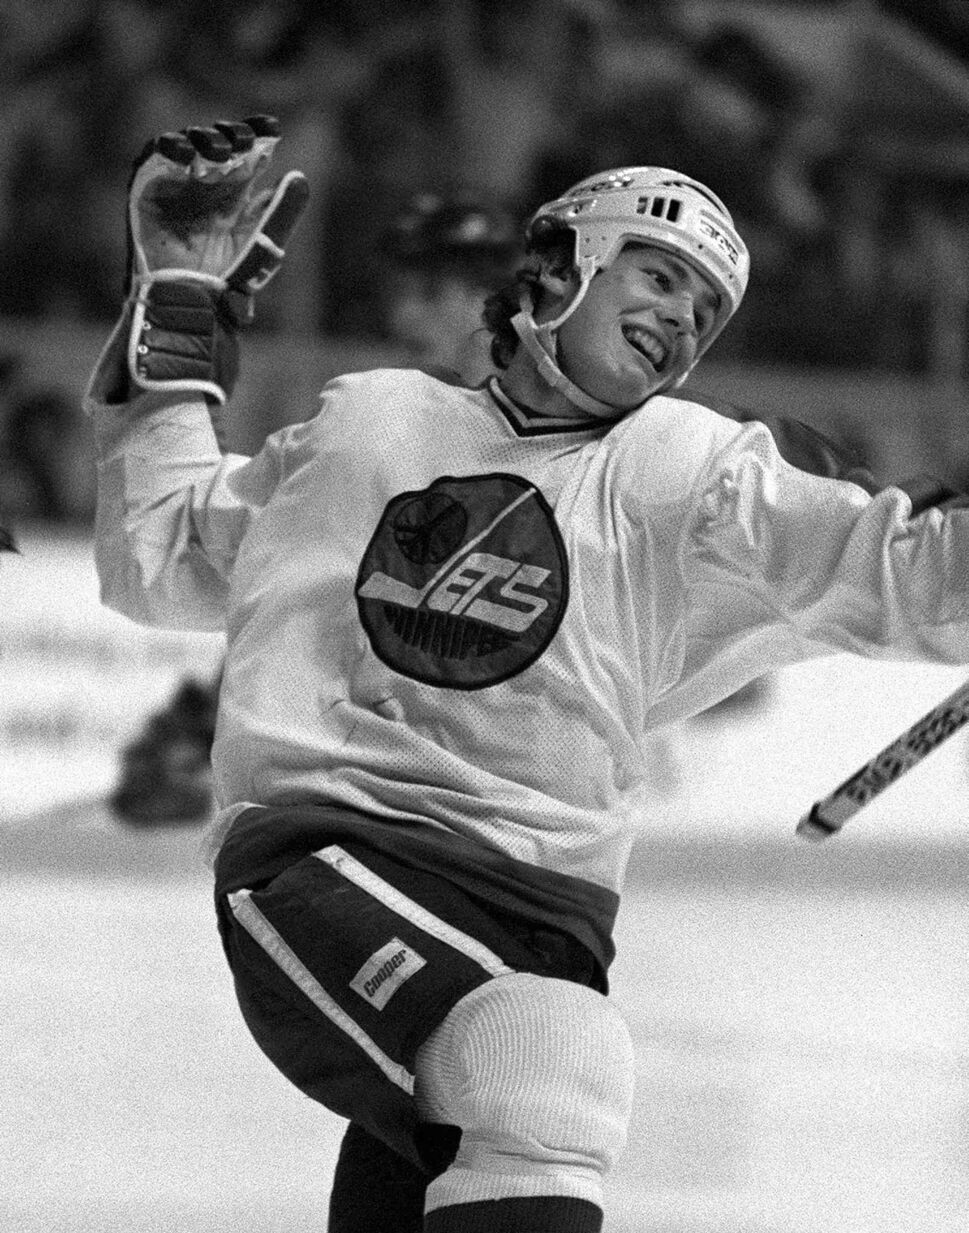 An undated photo of Hawerchuk in a game at Winnipeg Arena. (Ken Giglioitti / Winnipeg Free Press files)